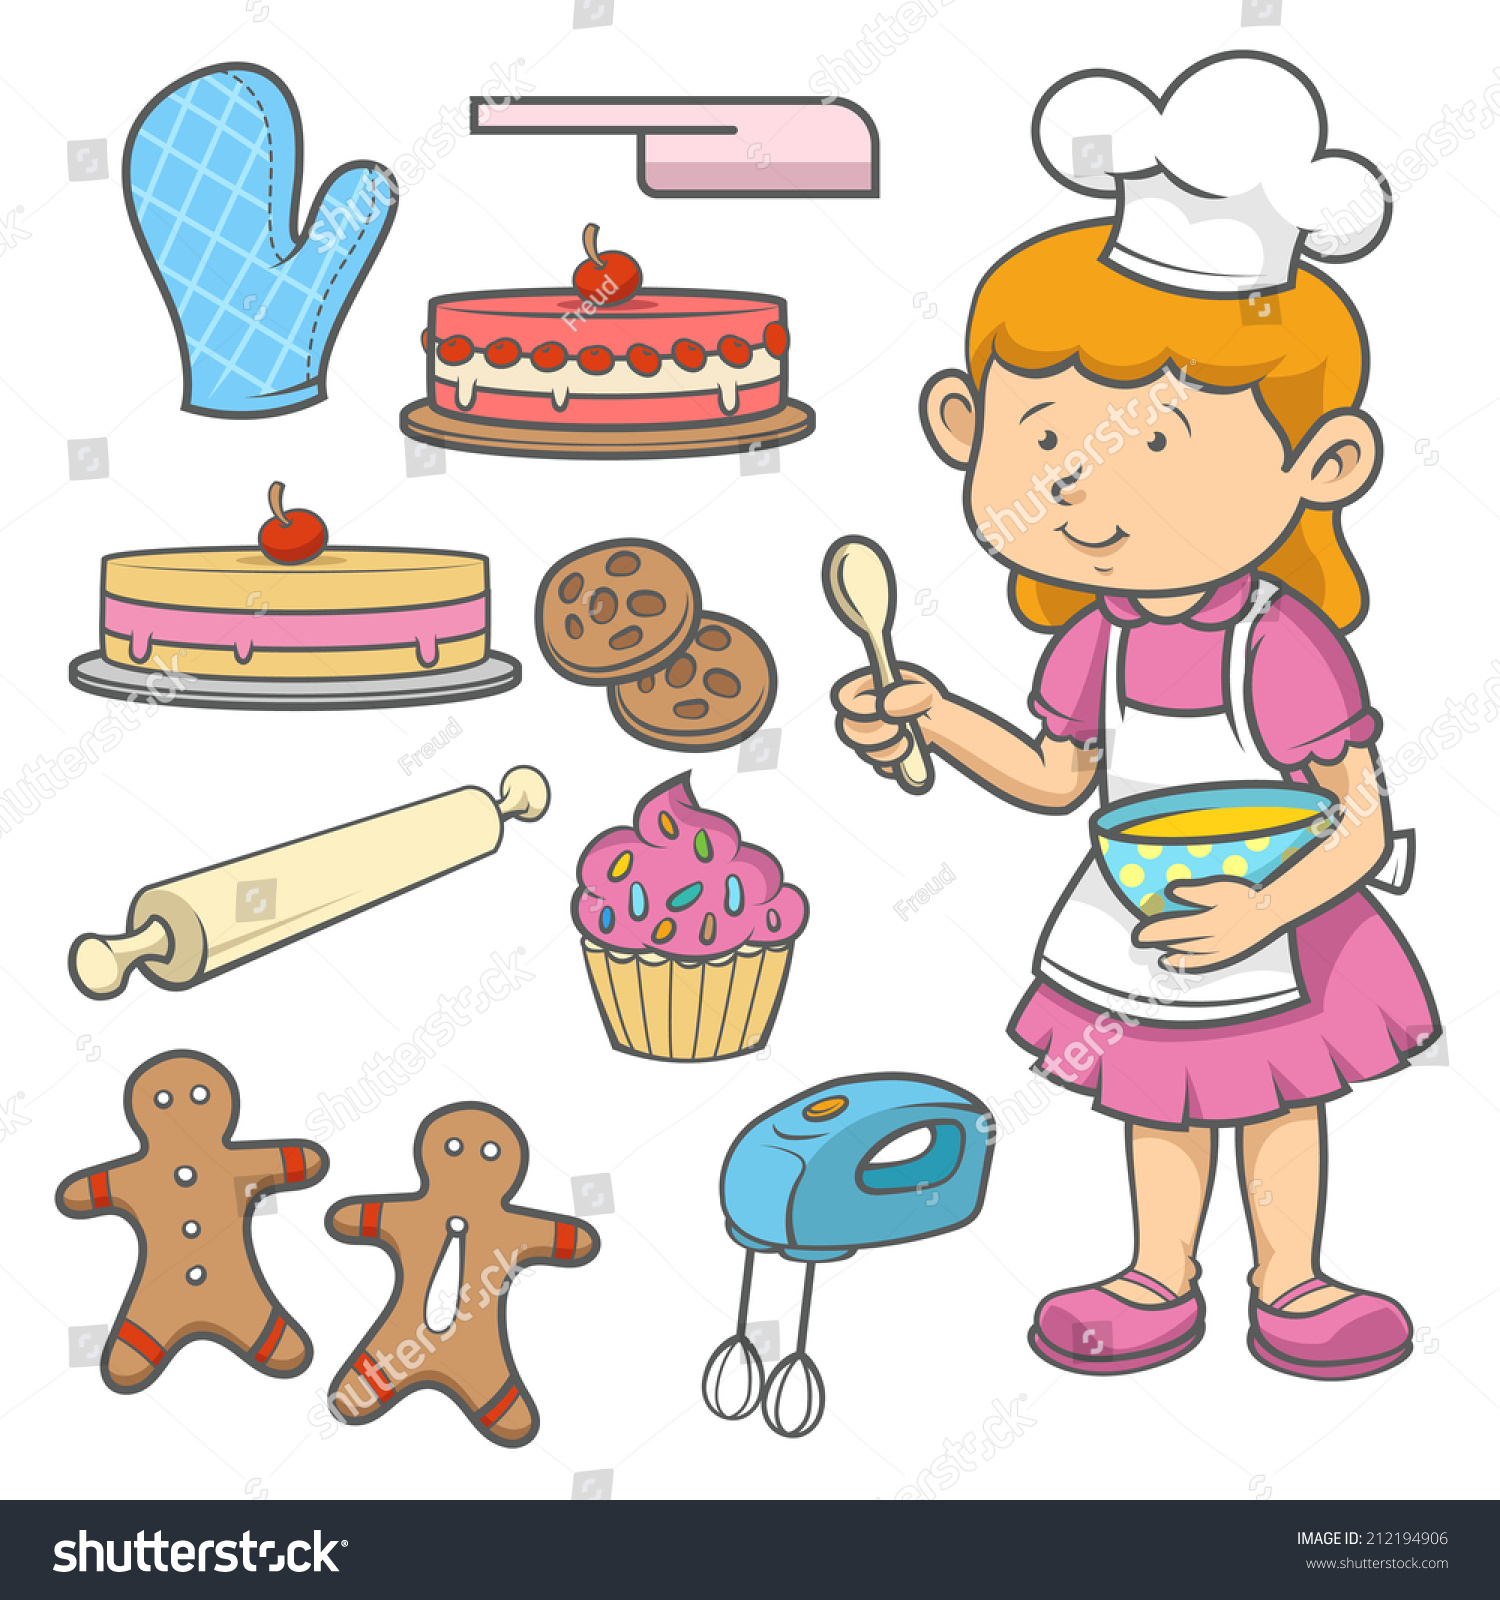 Little Chef Cartoon Illustration Wearing Uniform Cookies And Kitchen Equipment Isolated Over White Background